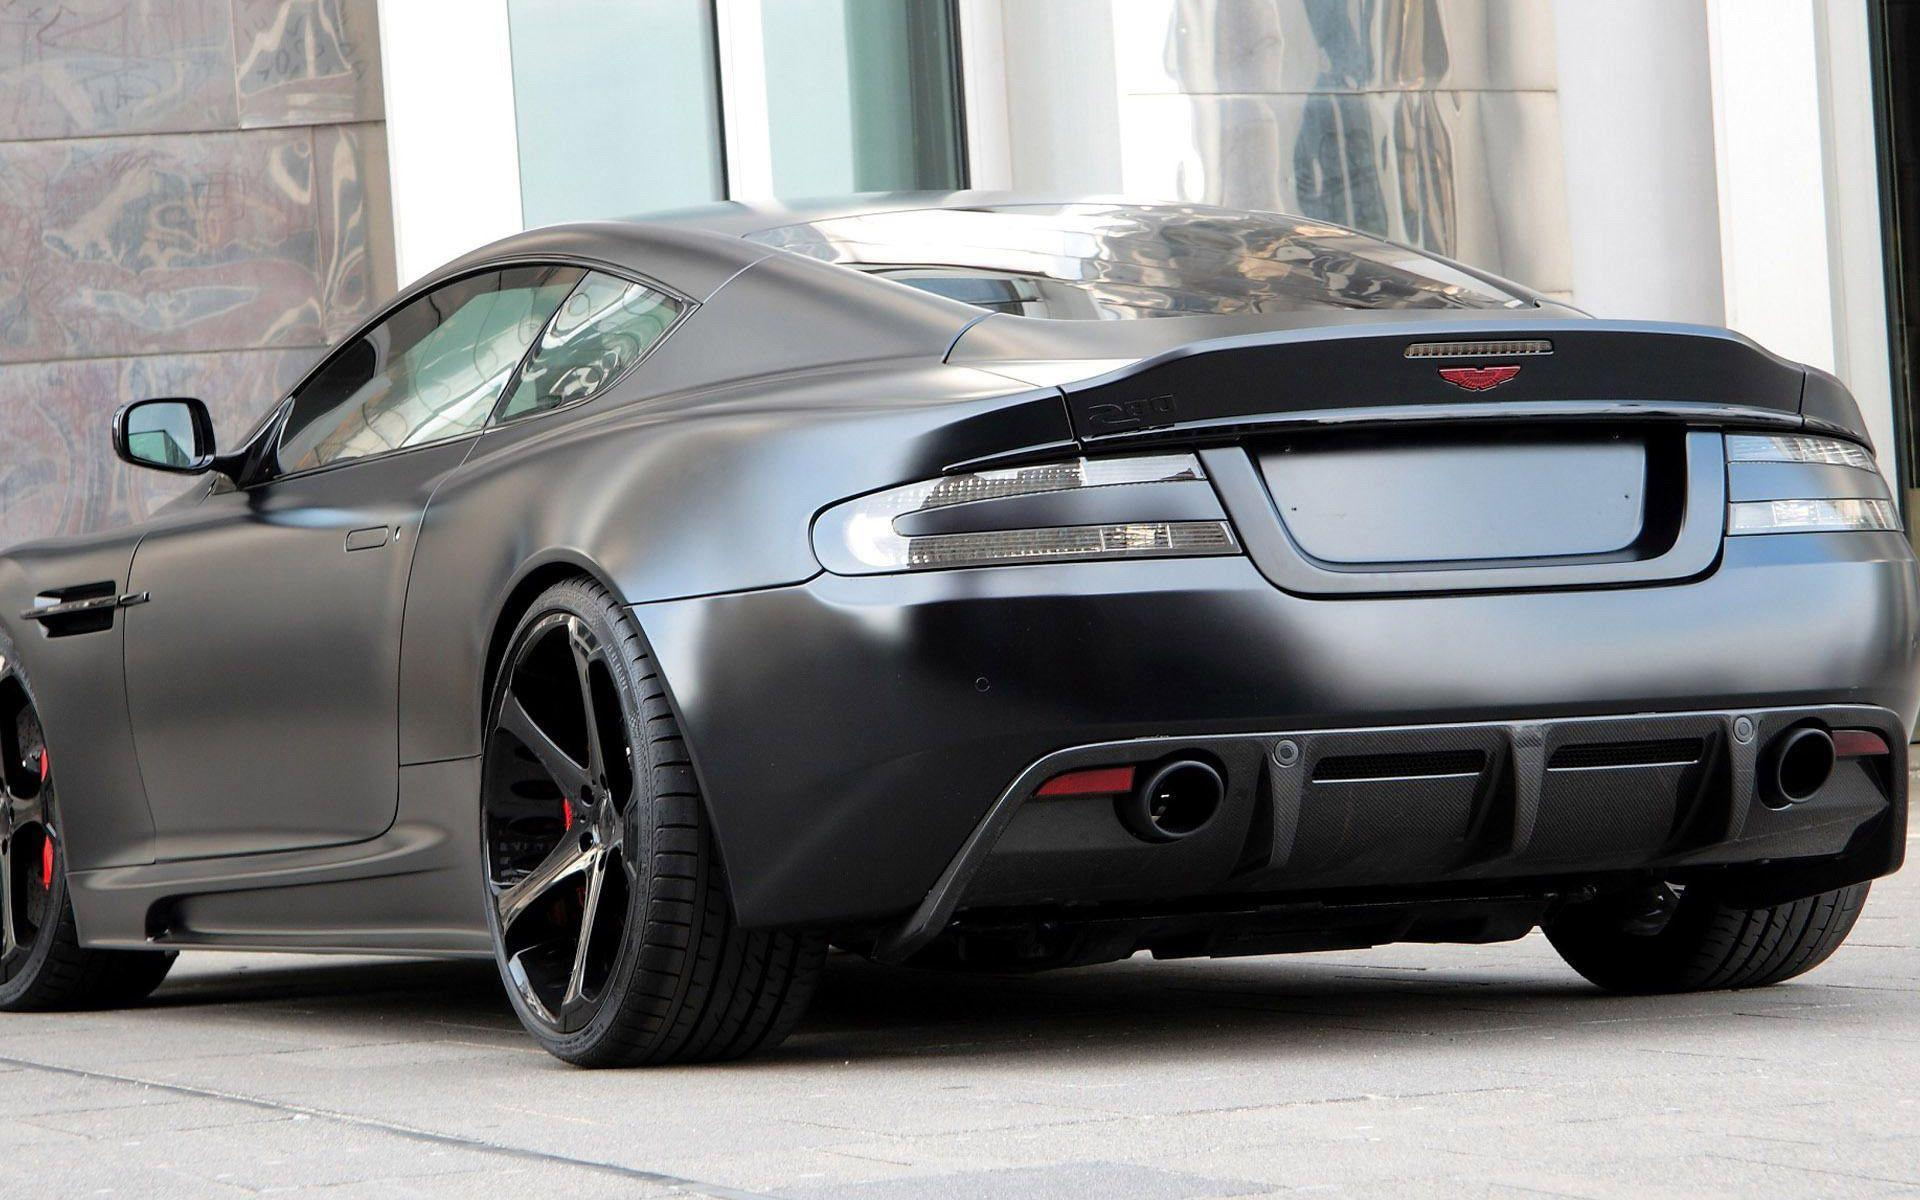 aston martin dbs v12 wallpaper - photo #8